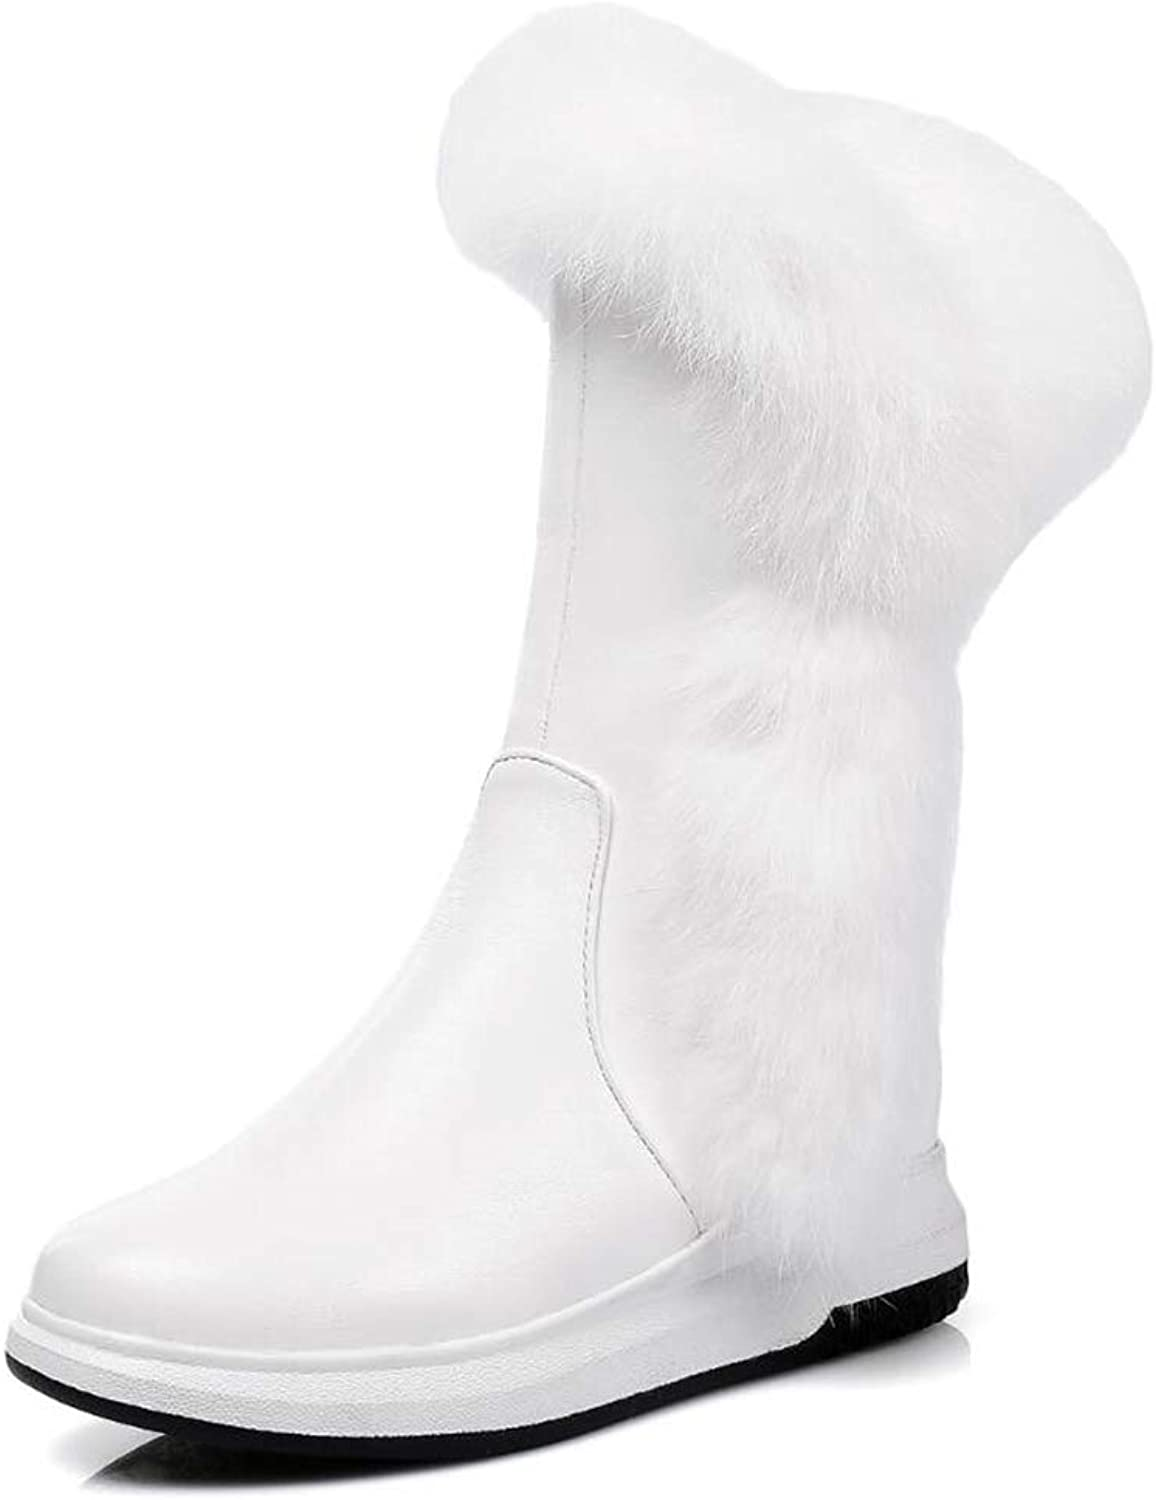 LVYING Womens Warm Mid Calf Ankle Boots Fashion Round Toe Nonskid Rubber Sole Winter Snow Boots